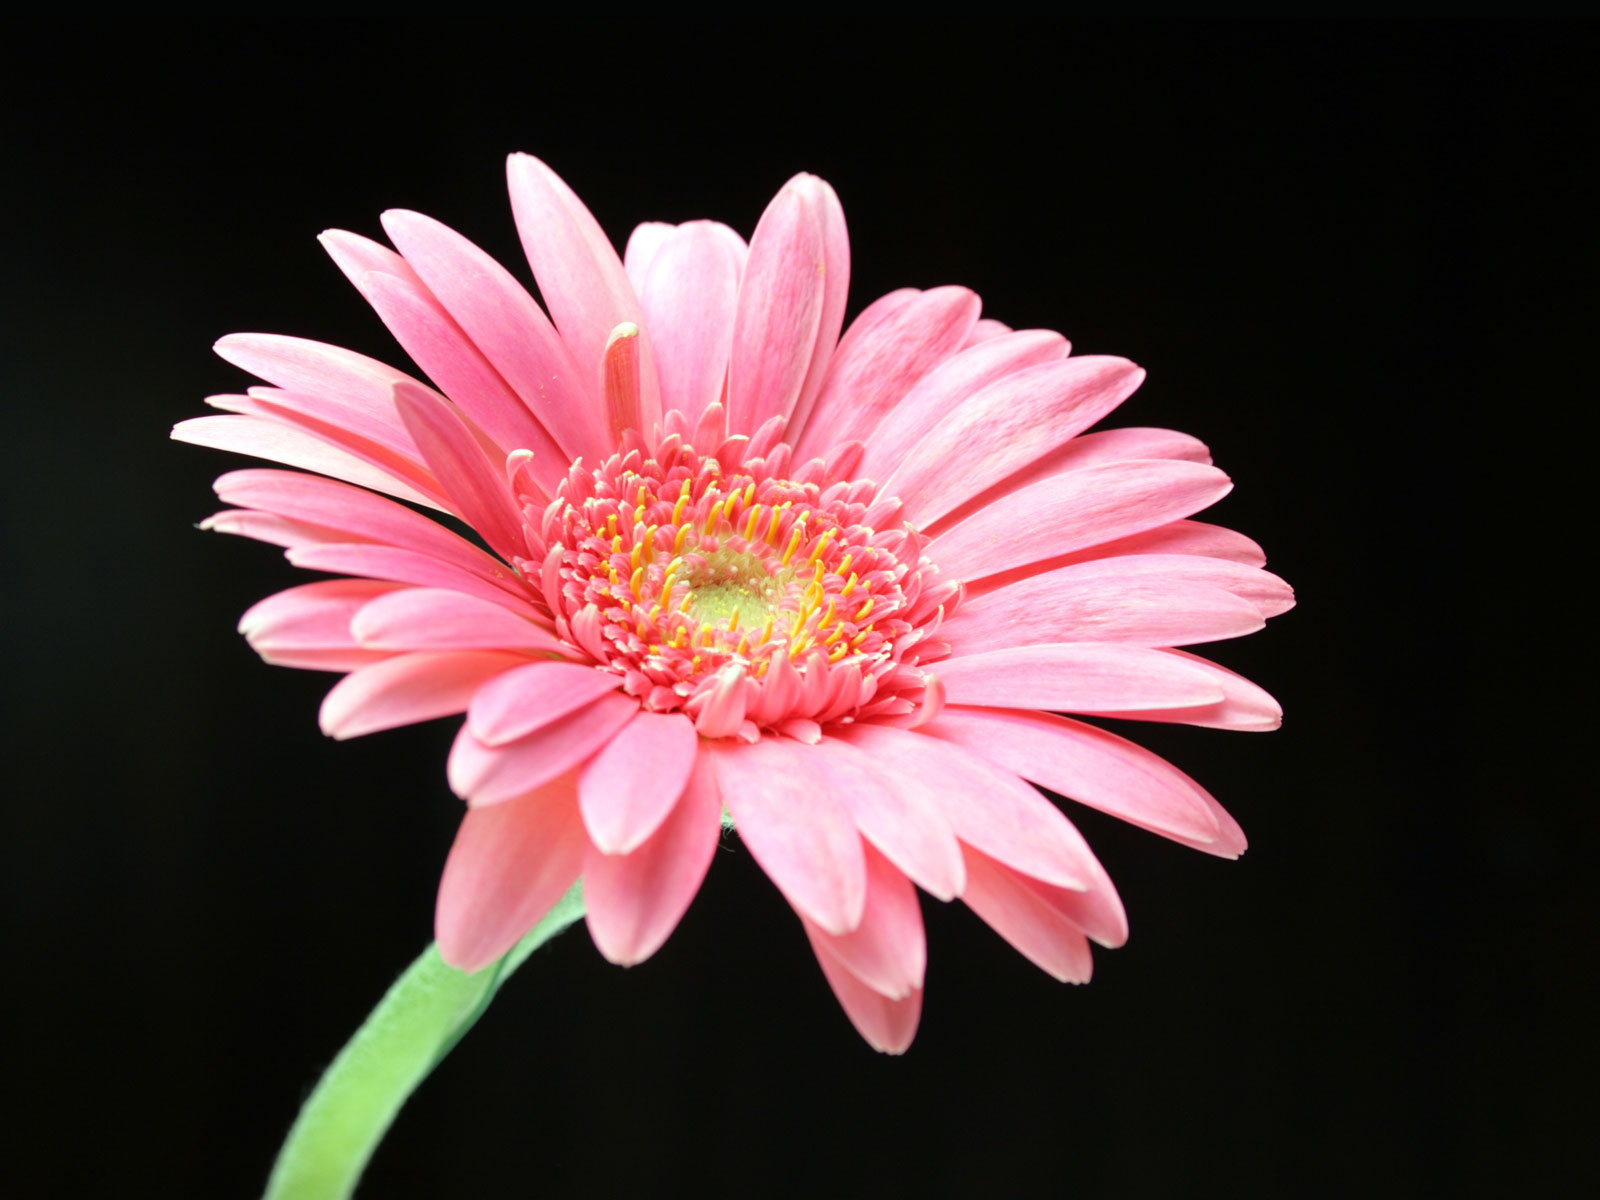 1000 images about Daisy Flower on Pinterest